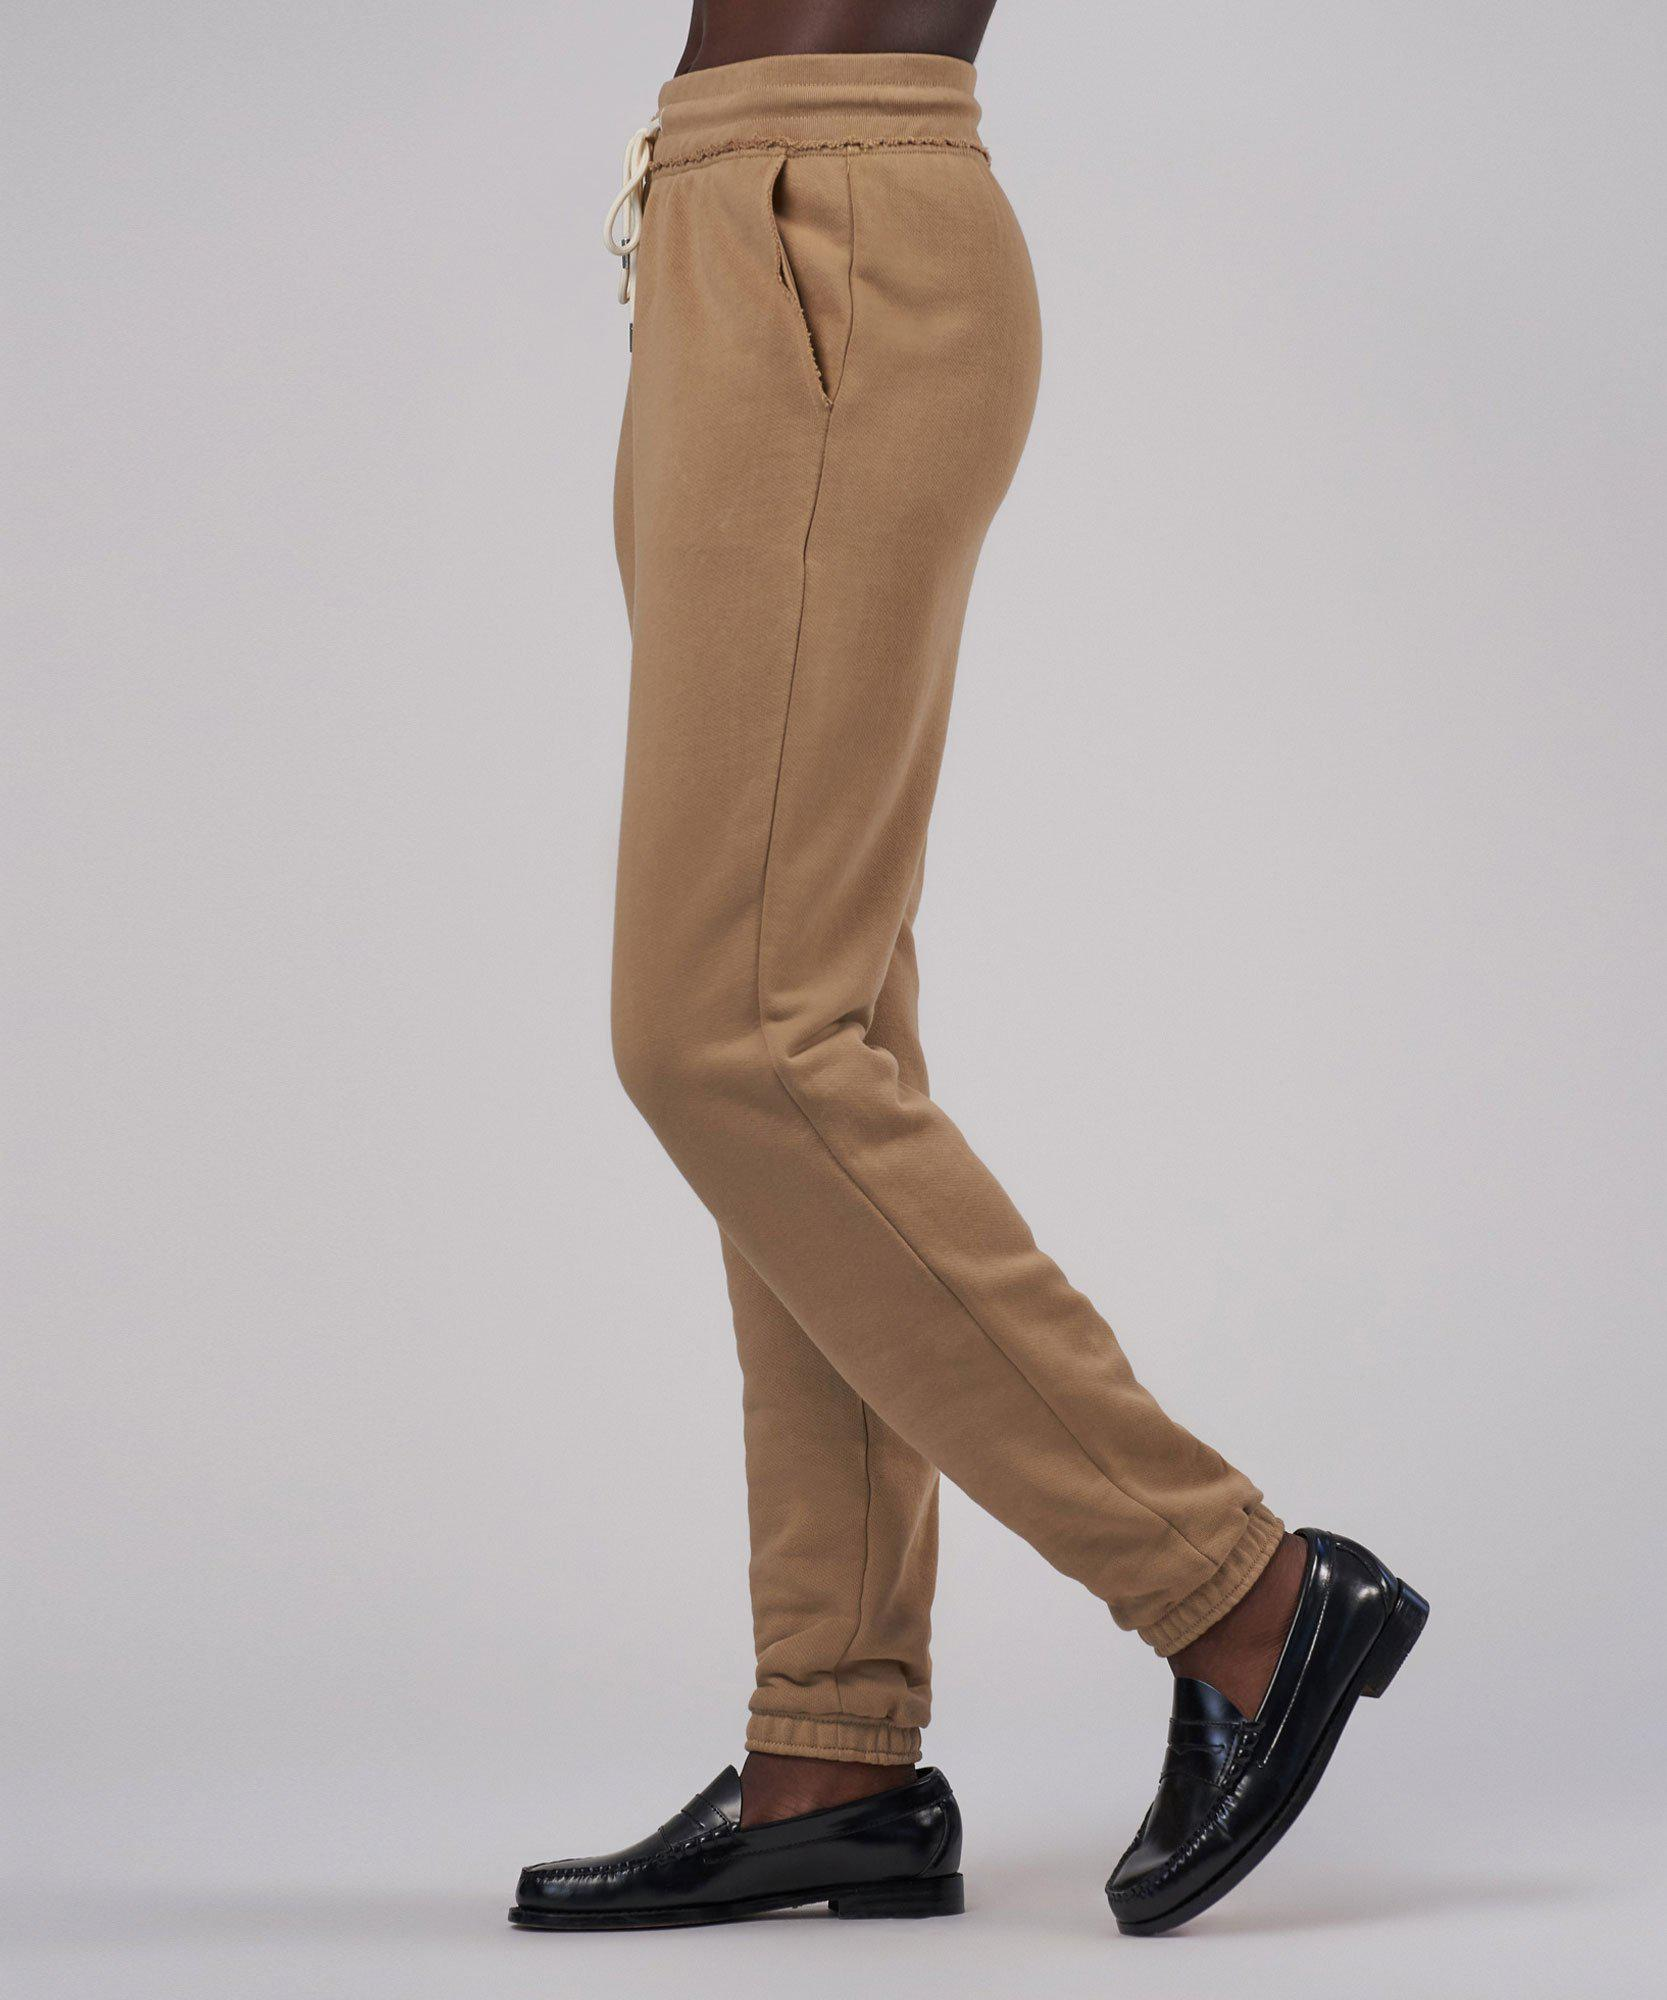 French Terry Pull-On Pant - Dune 1